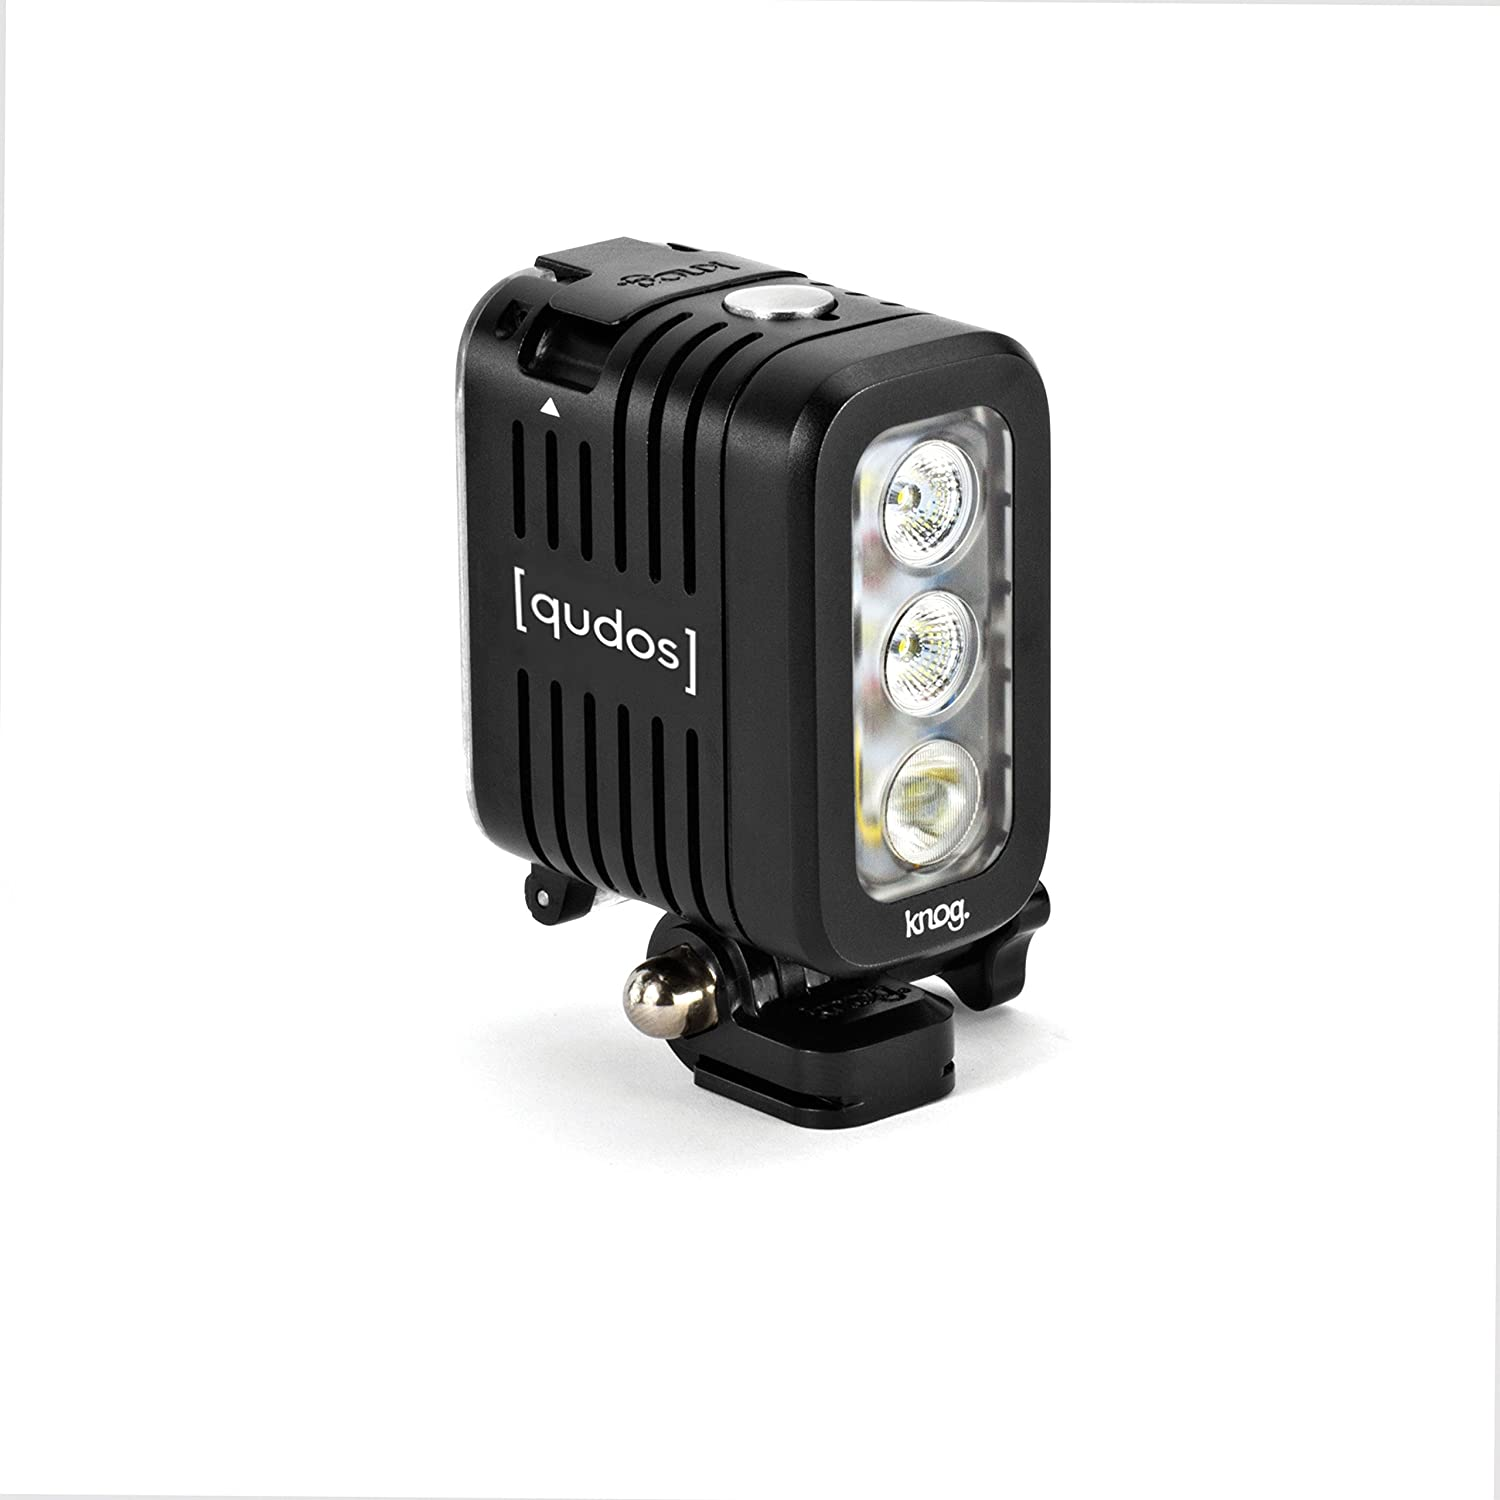 Amazon.com Knog [qudos] ACTION Video Light for GoPro Black KNOG Sports u0026 Outdoors  sc 1 st  Amazon.com & Amazon.com: Knog [qudos] ACTION Video Light for GoPro Black: KNOG ... azcodes.com